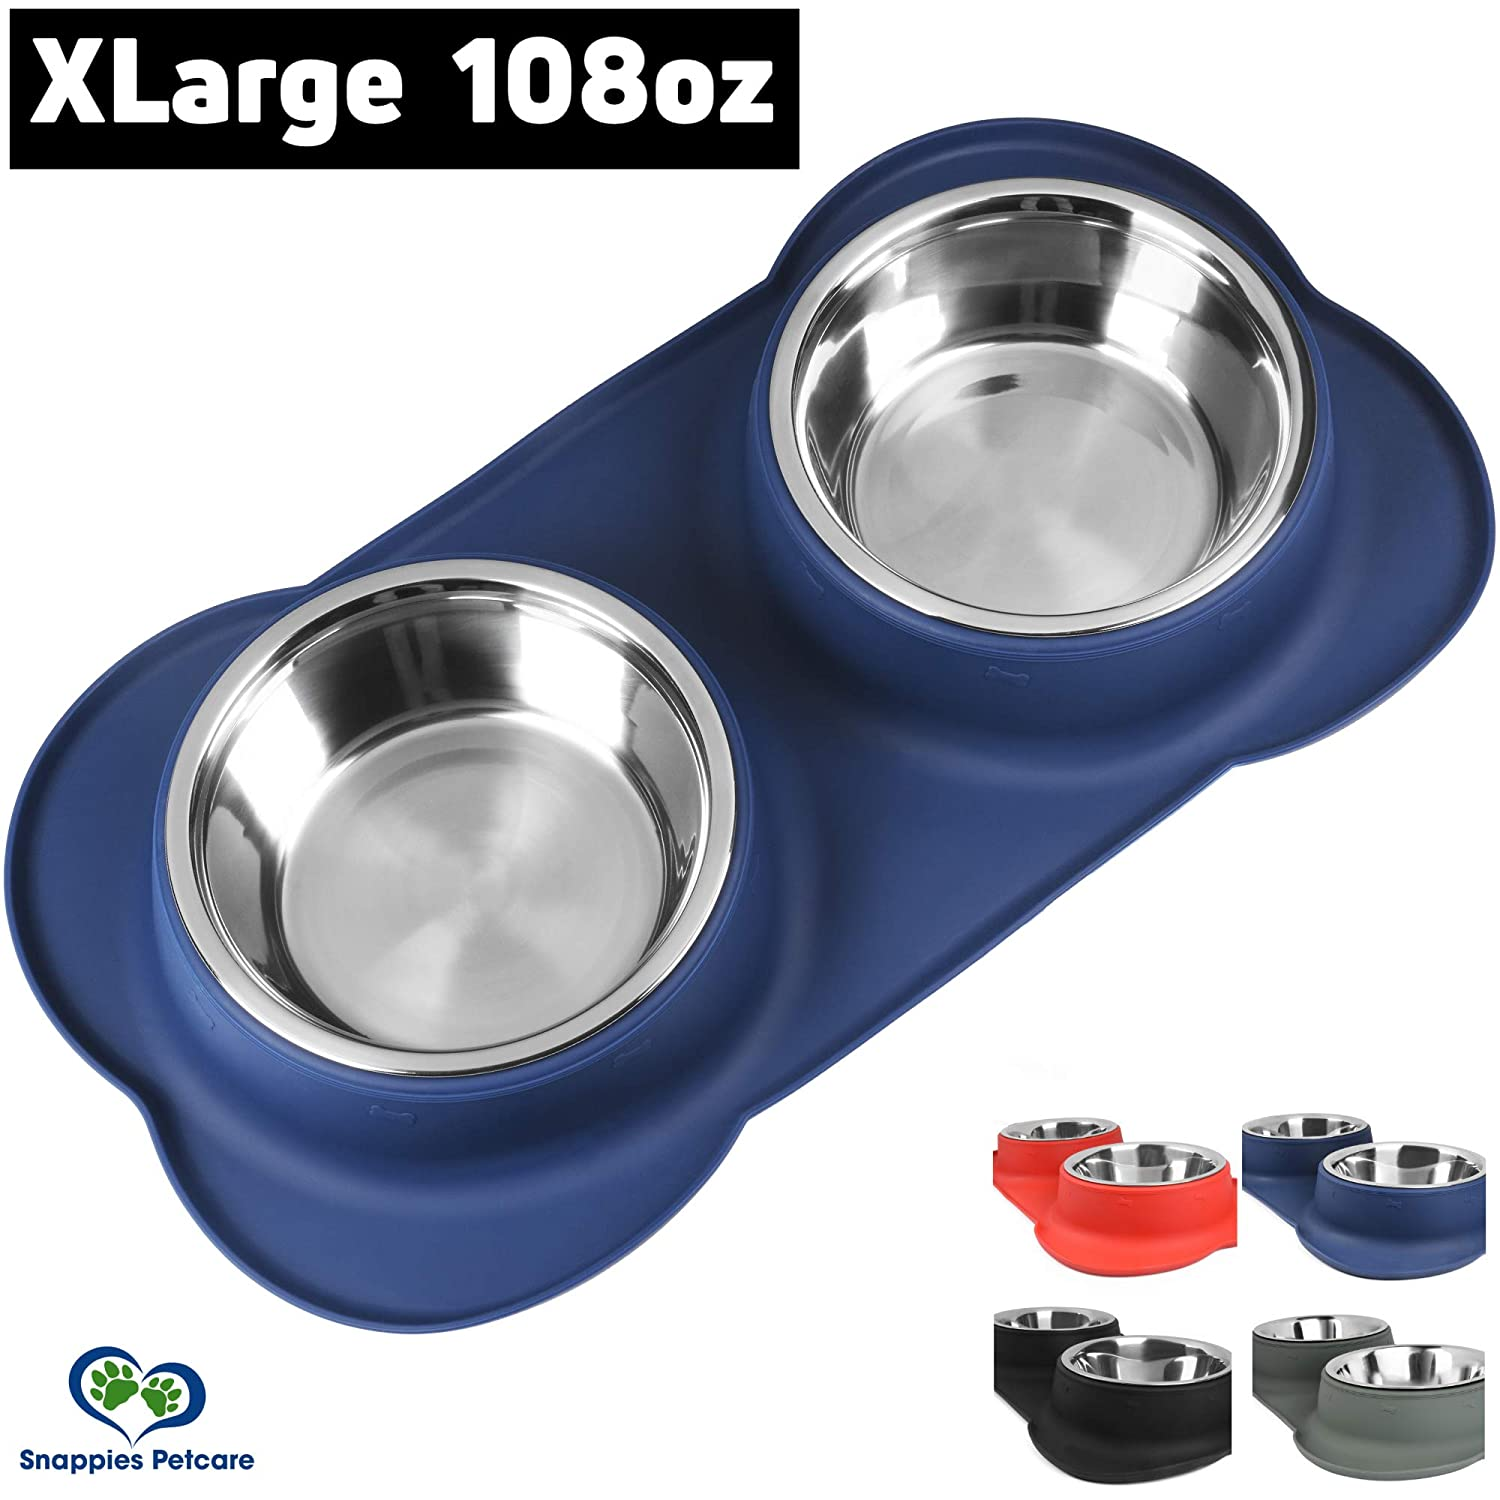 Navy bluee Large Dog Bowl 2 Large Capacity 54oz (108oz Total) Removable Stainless Steel Bowls Set in a Stylish No Mess, No Spill, Non Skid, Silicone Mat. Food & Water Bowl Medium to Large Dogs (Navy bluee)